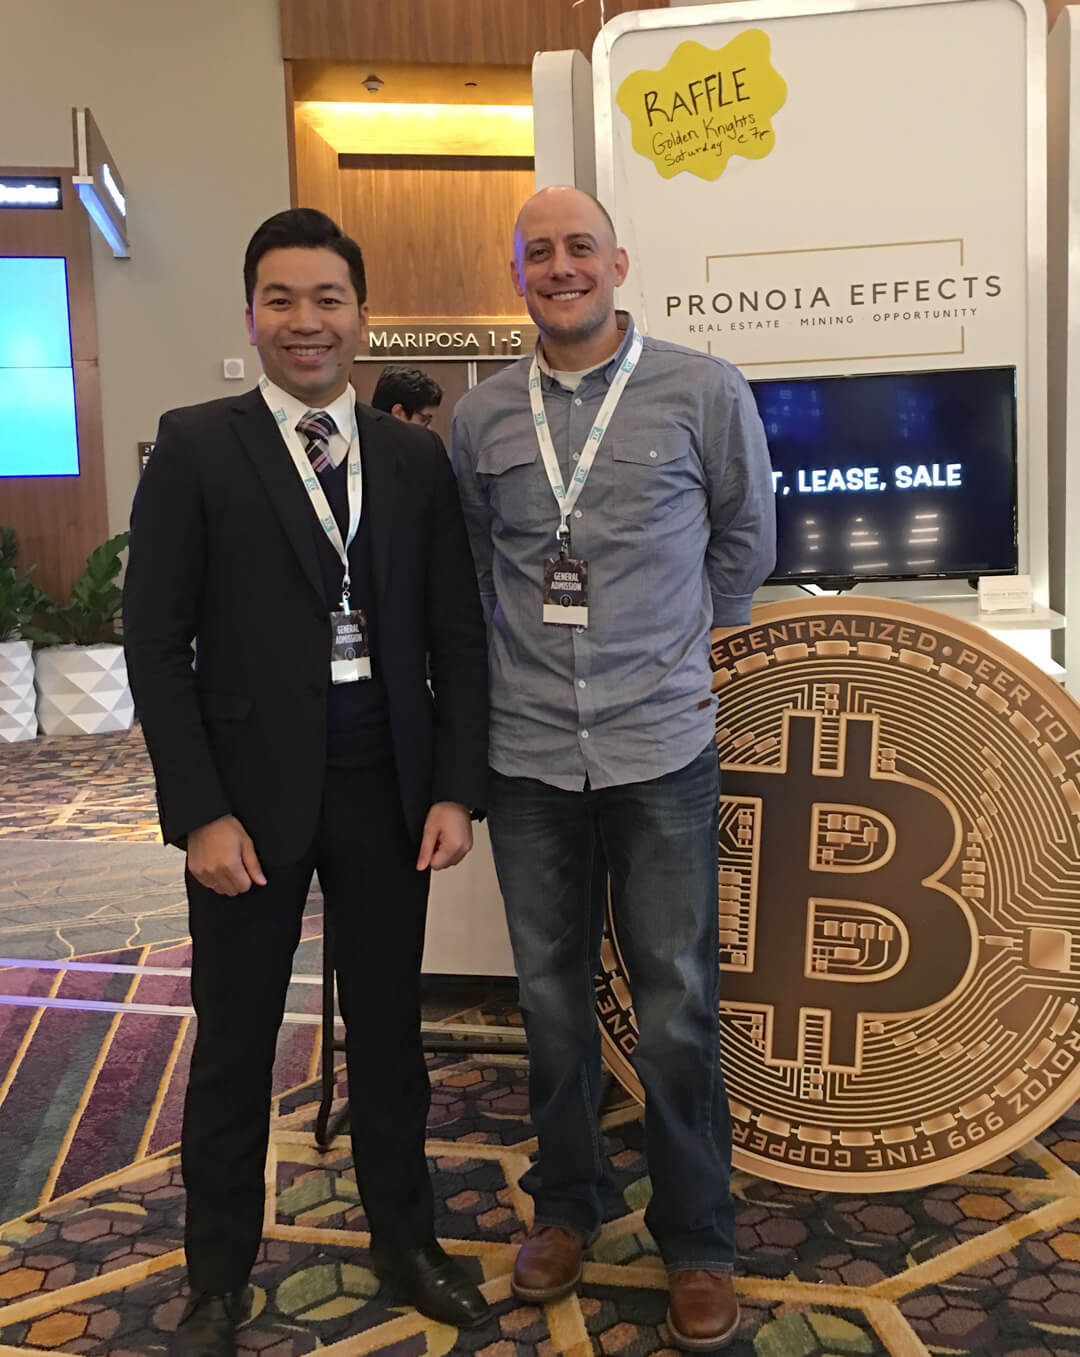 BLUEBELT at Worldcrypto conference in Las Vegas, the U.S